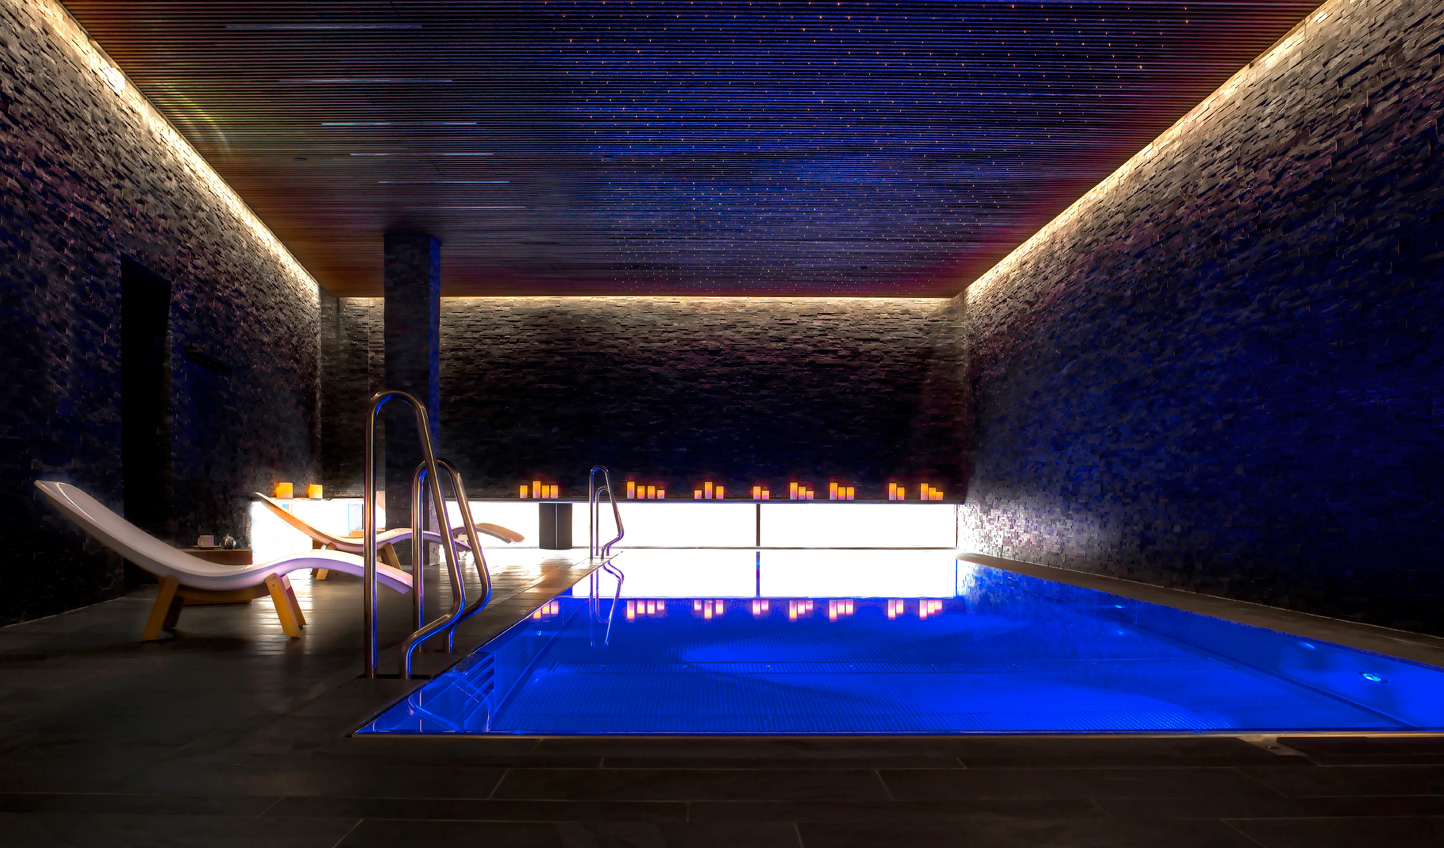 Rest your weary body in the spa